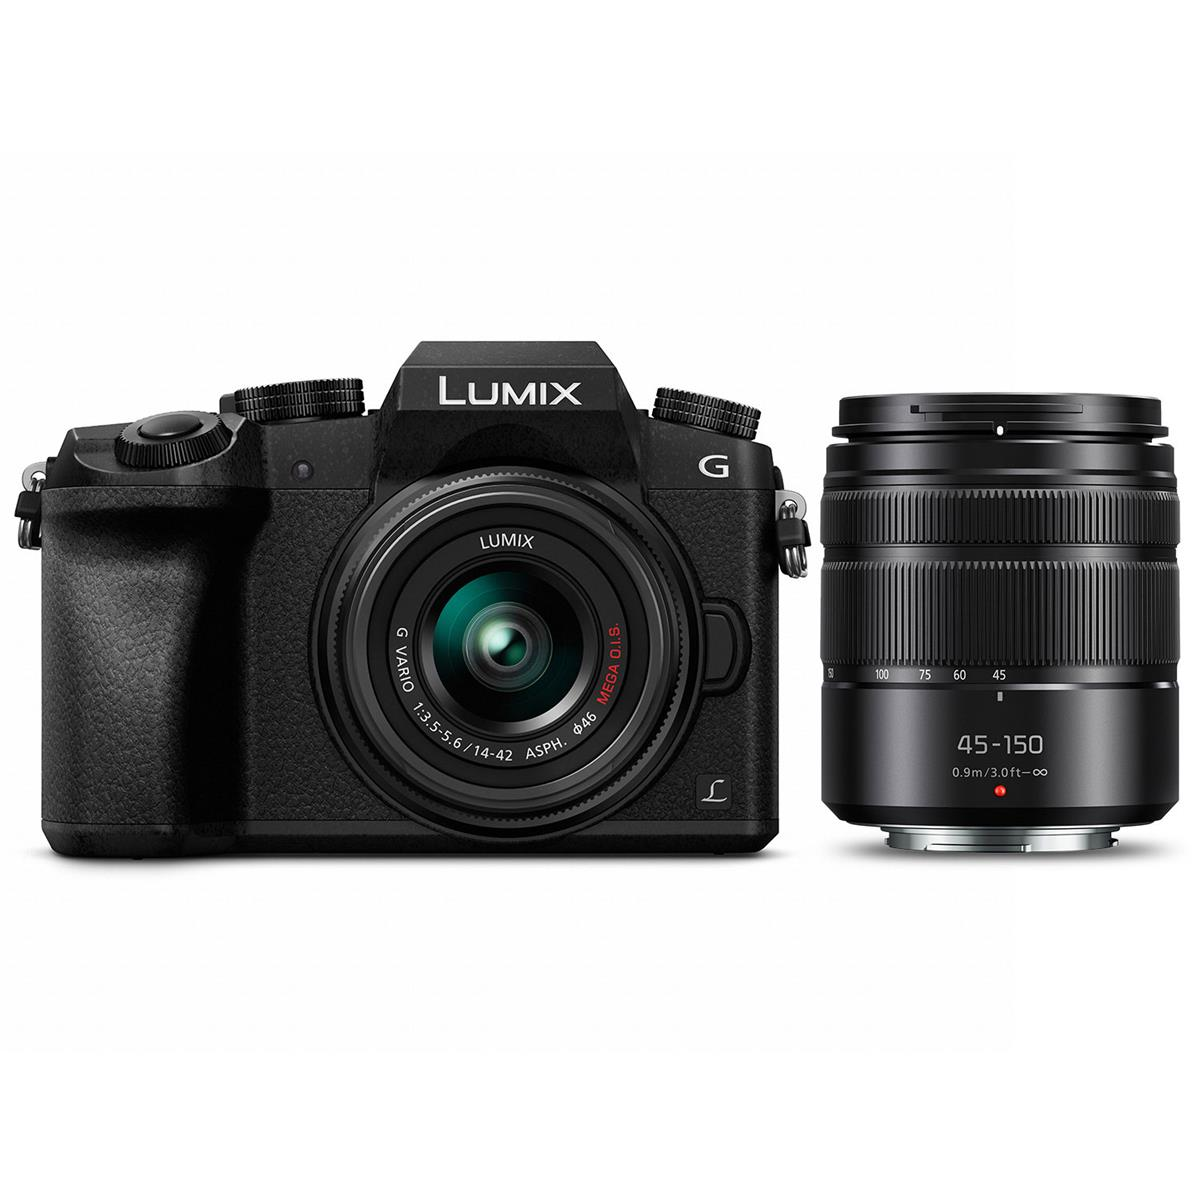 Hot Deal Back: Panasonic DMC-G7 with Two Lenses Kit for $497.99!